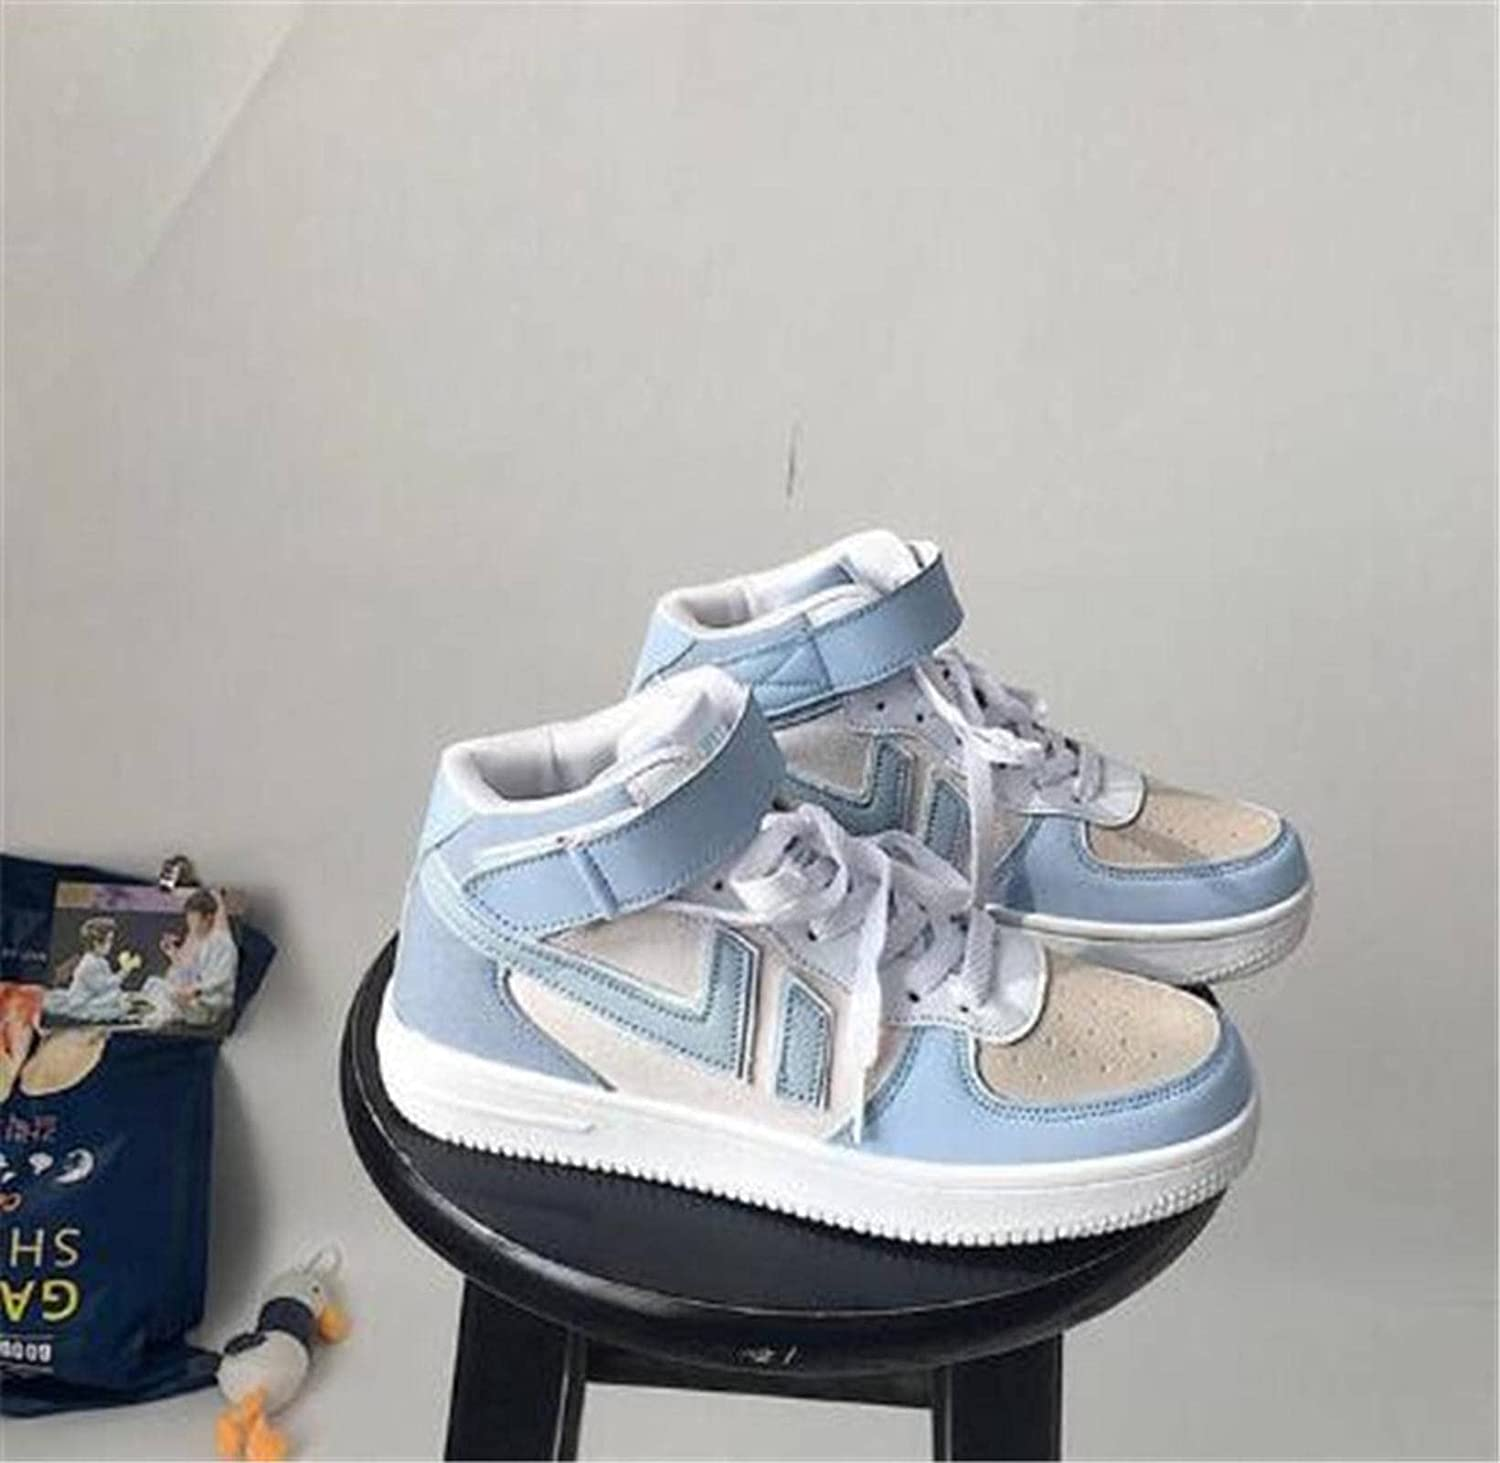 Platform P U Womens Sneakers Shoes Fashion Light Weight Shoes Womanhightop Walking Lace Up Ladies Casual Sneakers